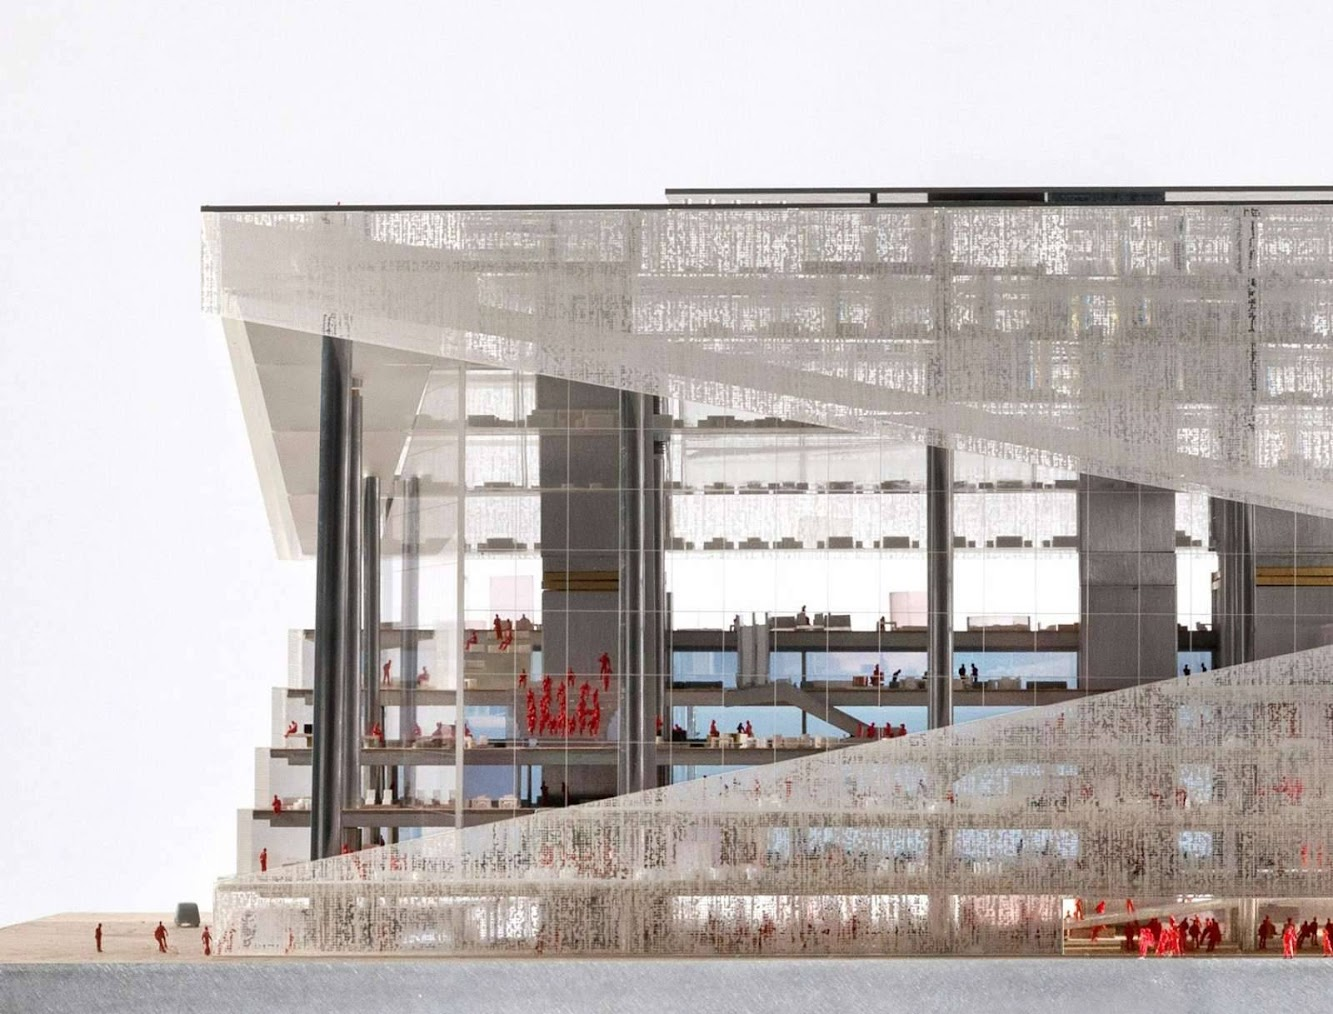 Oma Wins Axel Springer s new media centre